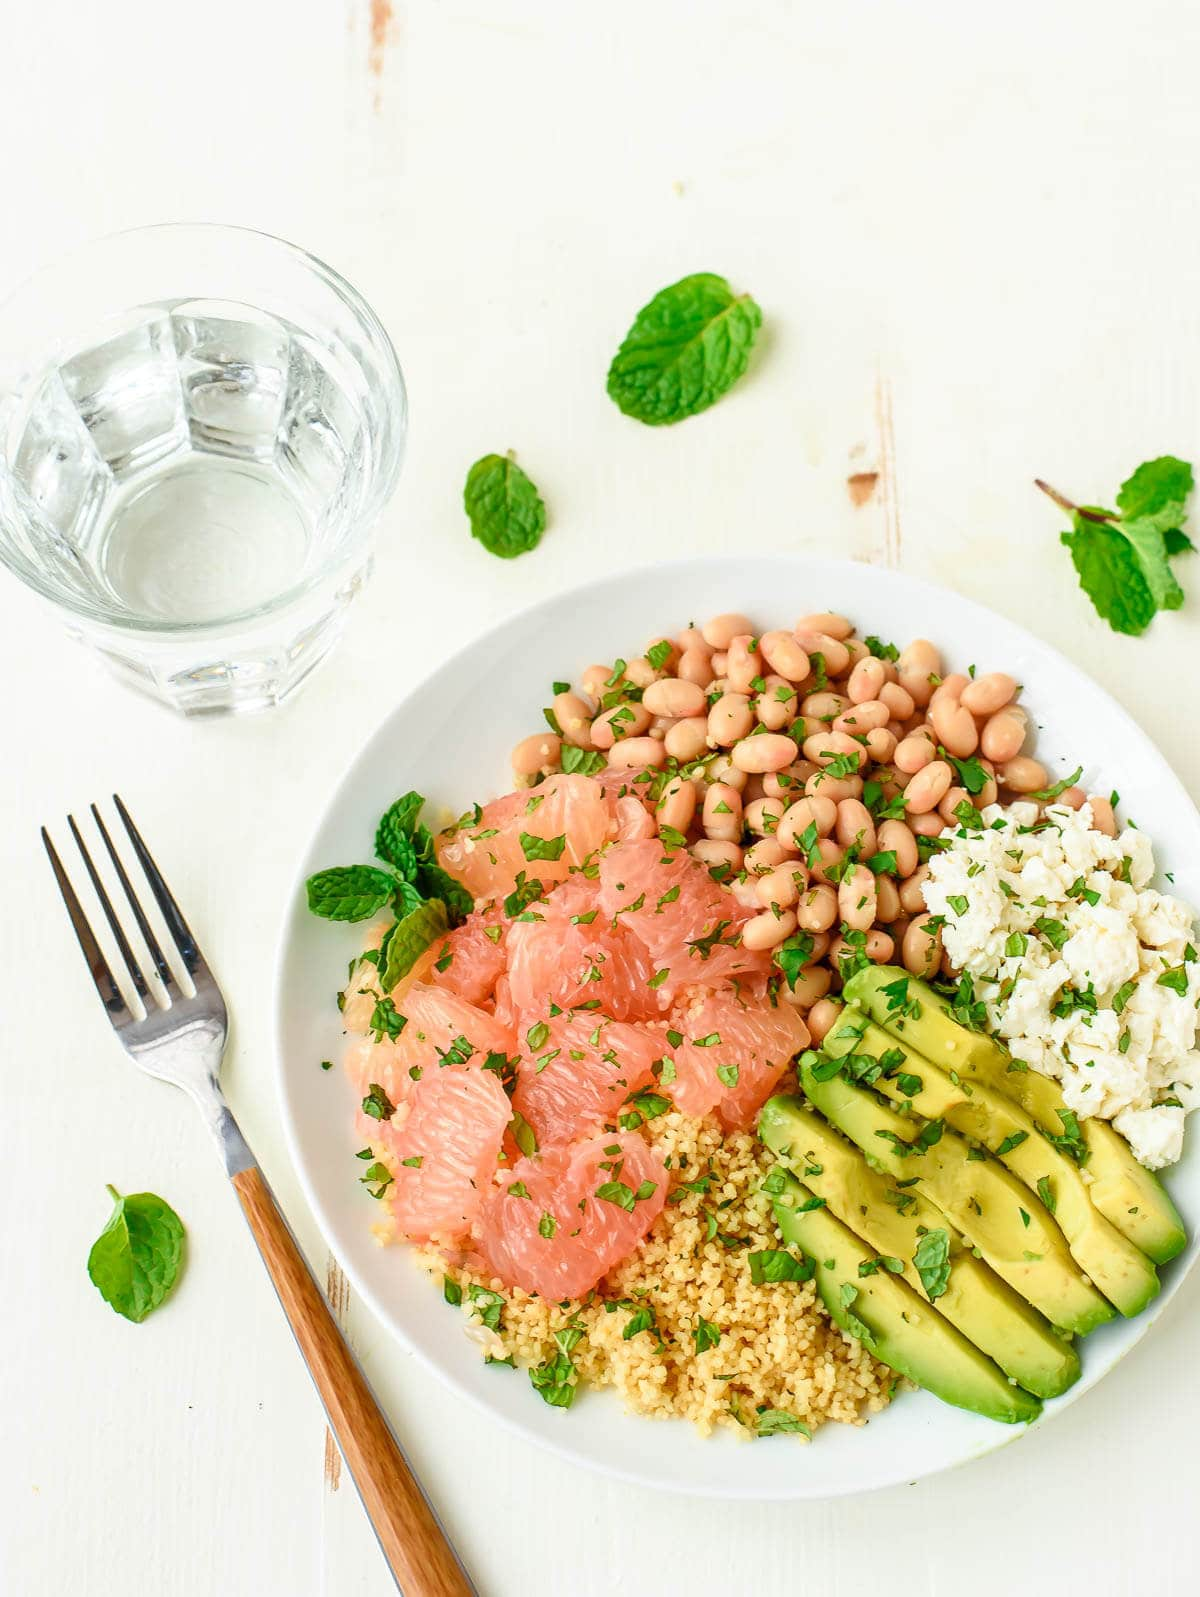 Avocado Grapefruit Couscous Salad with Feta and White Beans. A beautiful, healthy salad that's perfect for a side or light lunch.